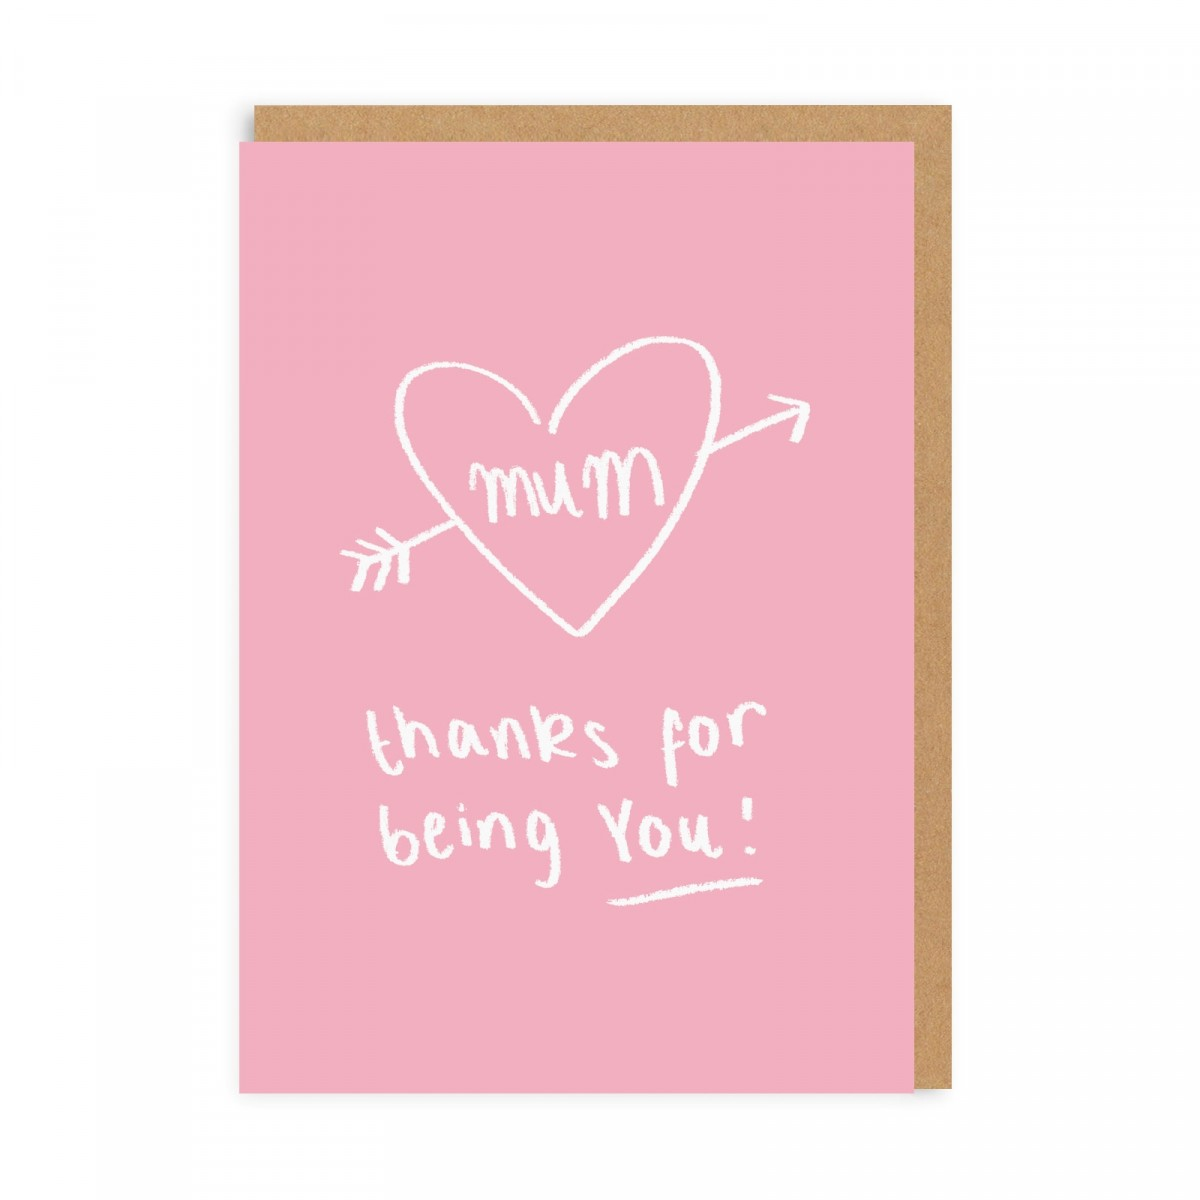 Thanks For Being You! - Because if she wasn't herself, she wouldn't be your mum would she? Complete with menopausal outbursts.